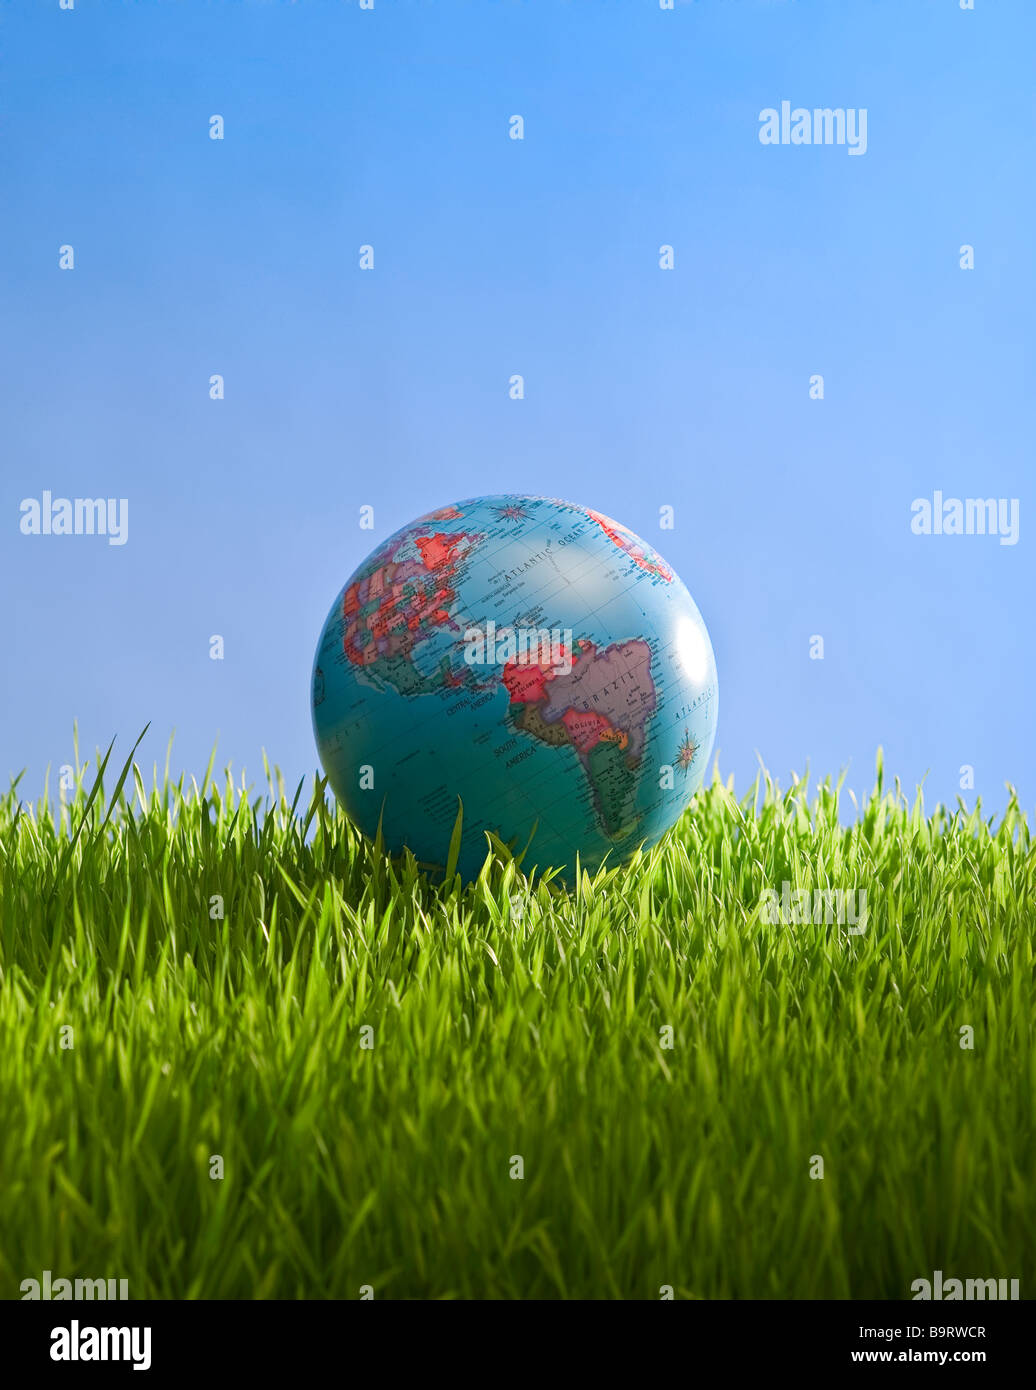 globe in grass with sky - Stock Image